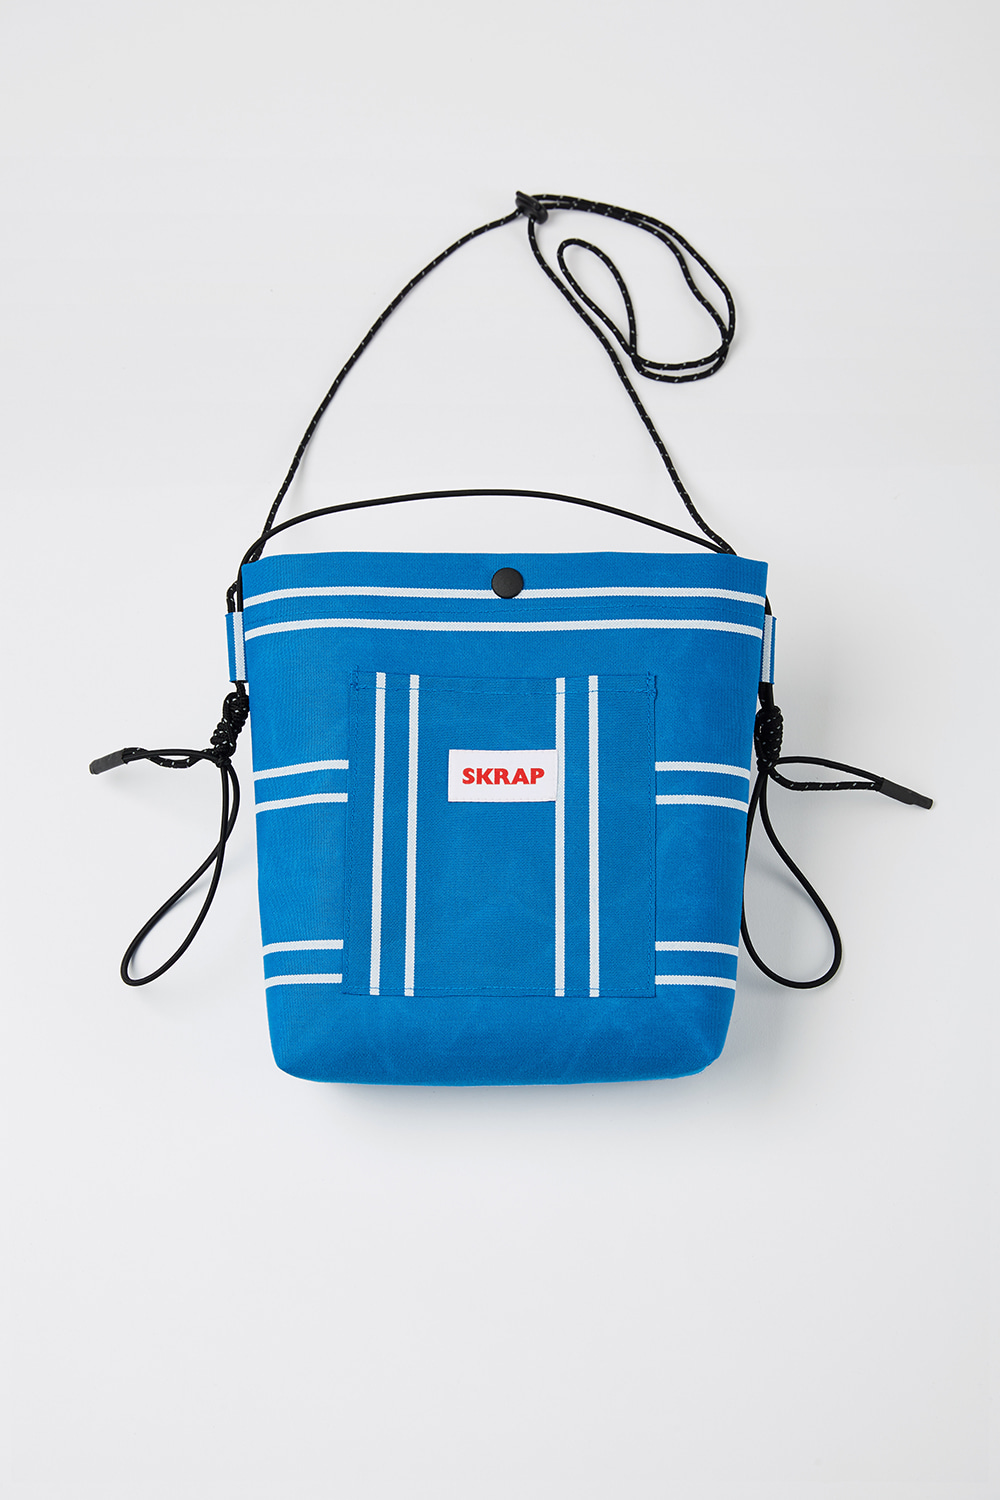 [스크랩] AWNING sacoche bag Blue stripe